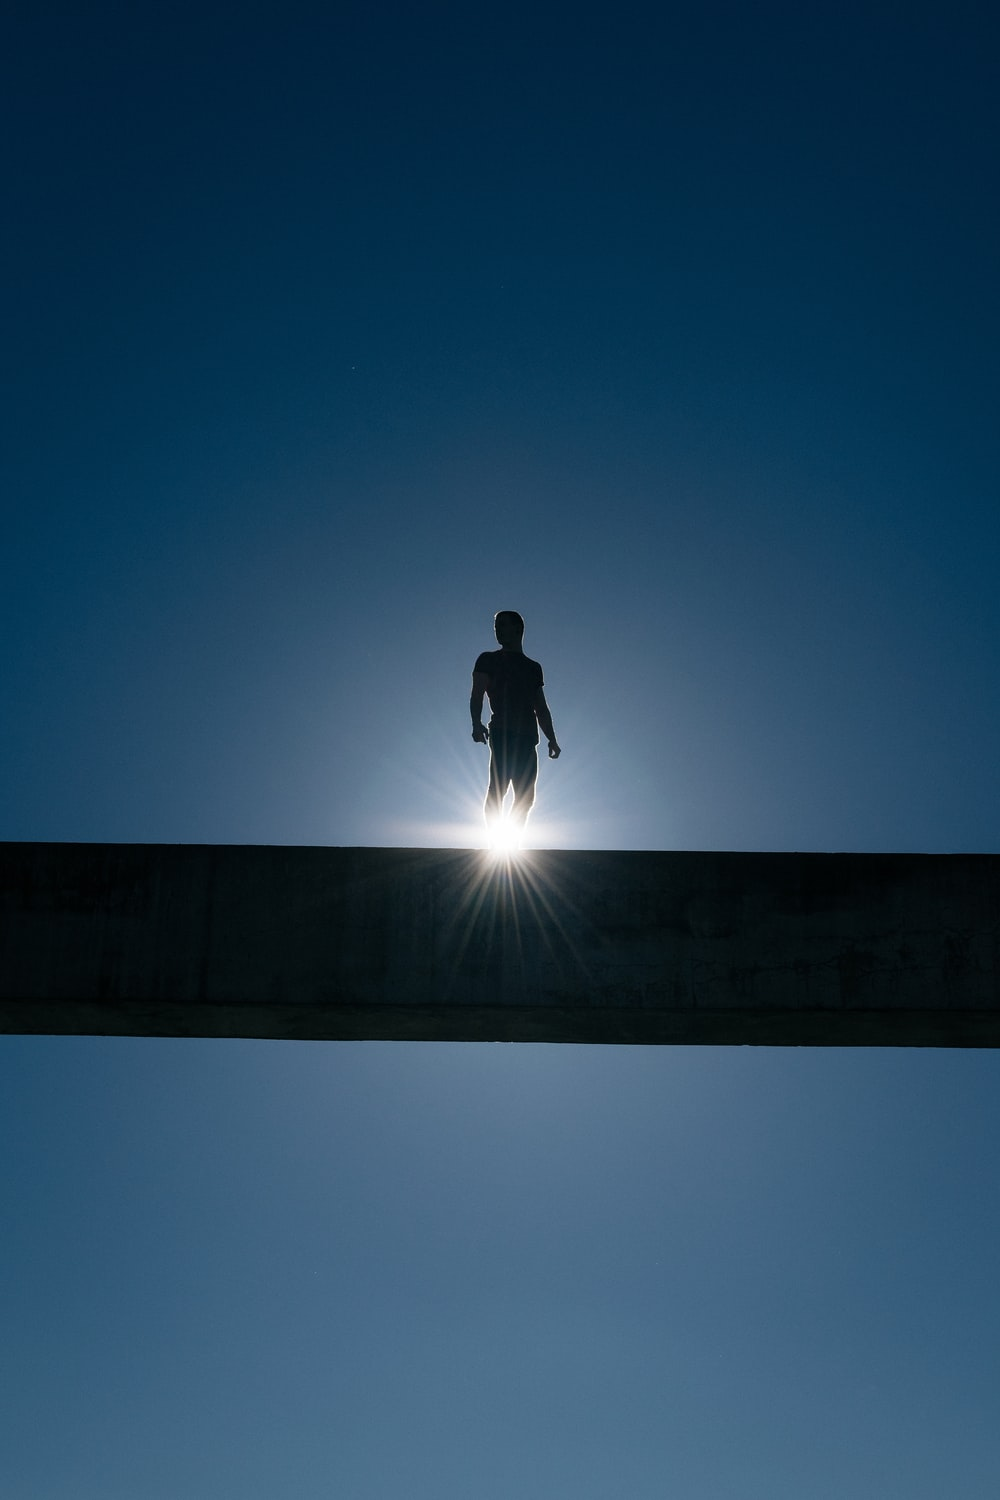 silhouette of man standing on bridge